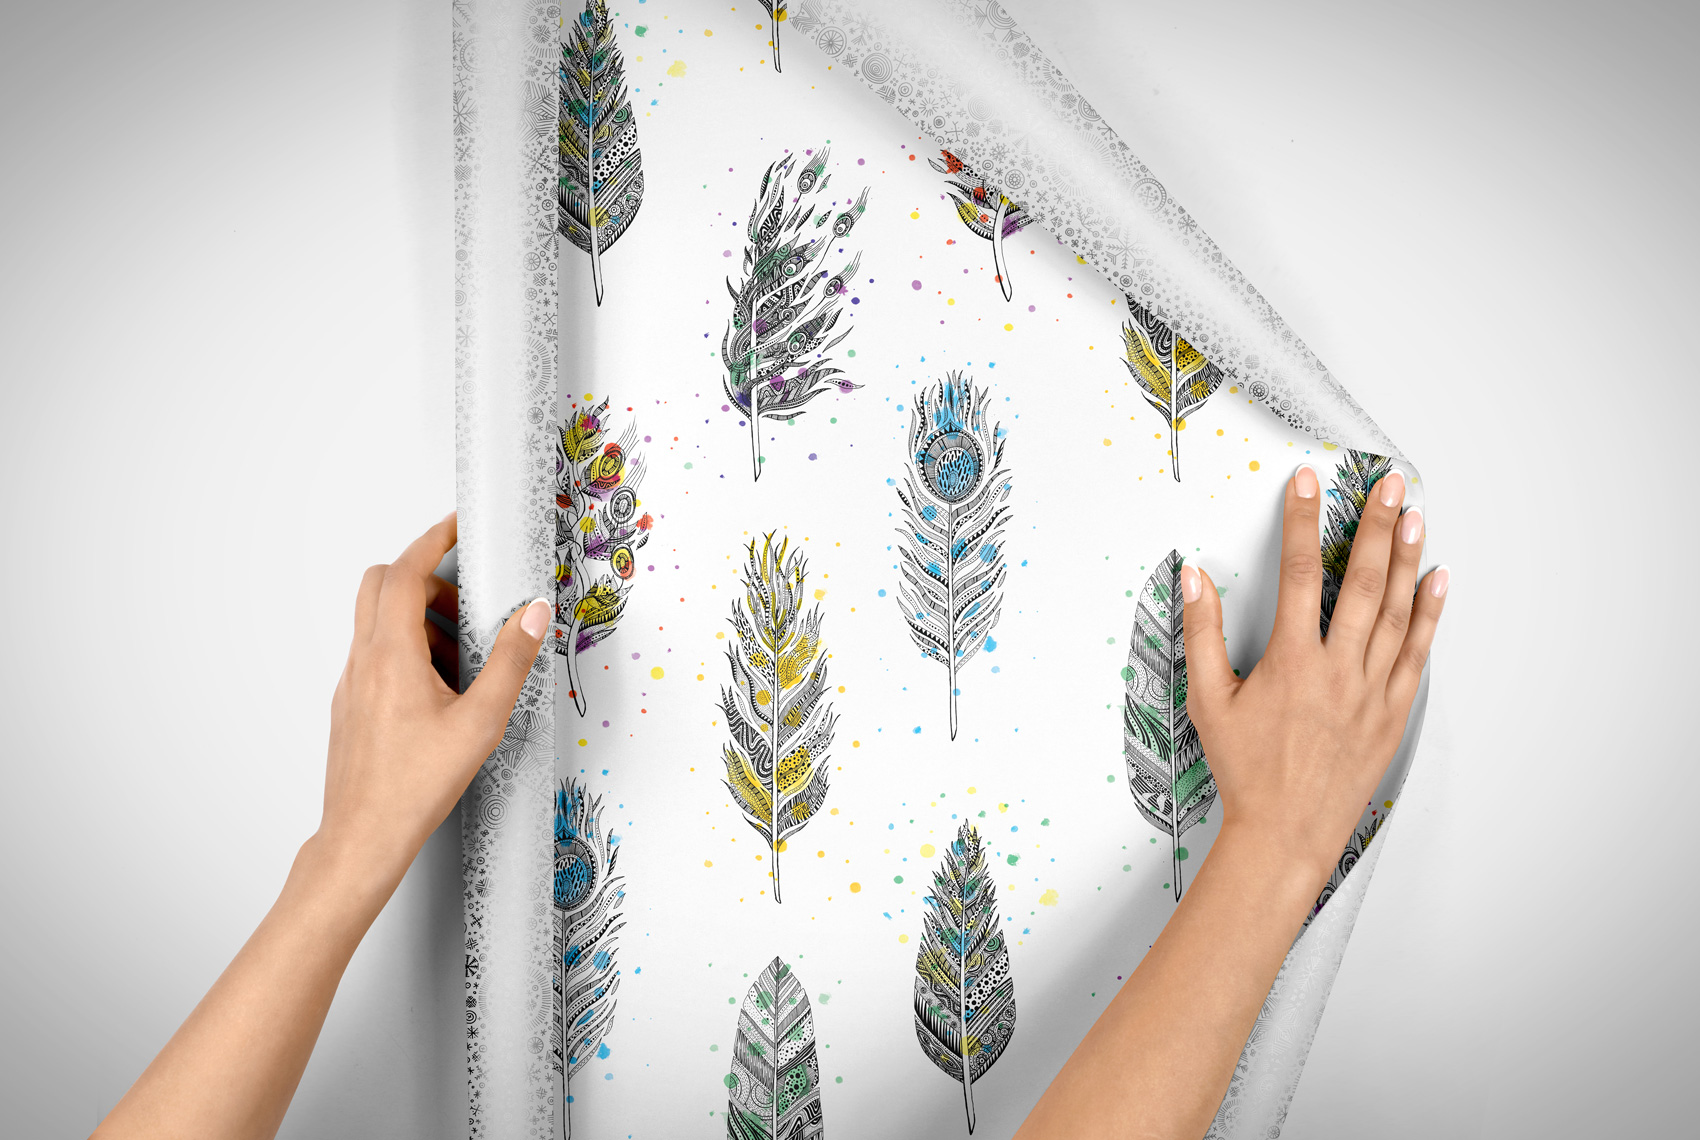 Illustrated feather hand drawn gift wrap pattern or wallpaper.